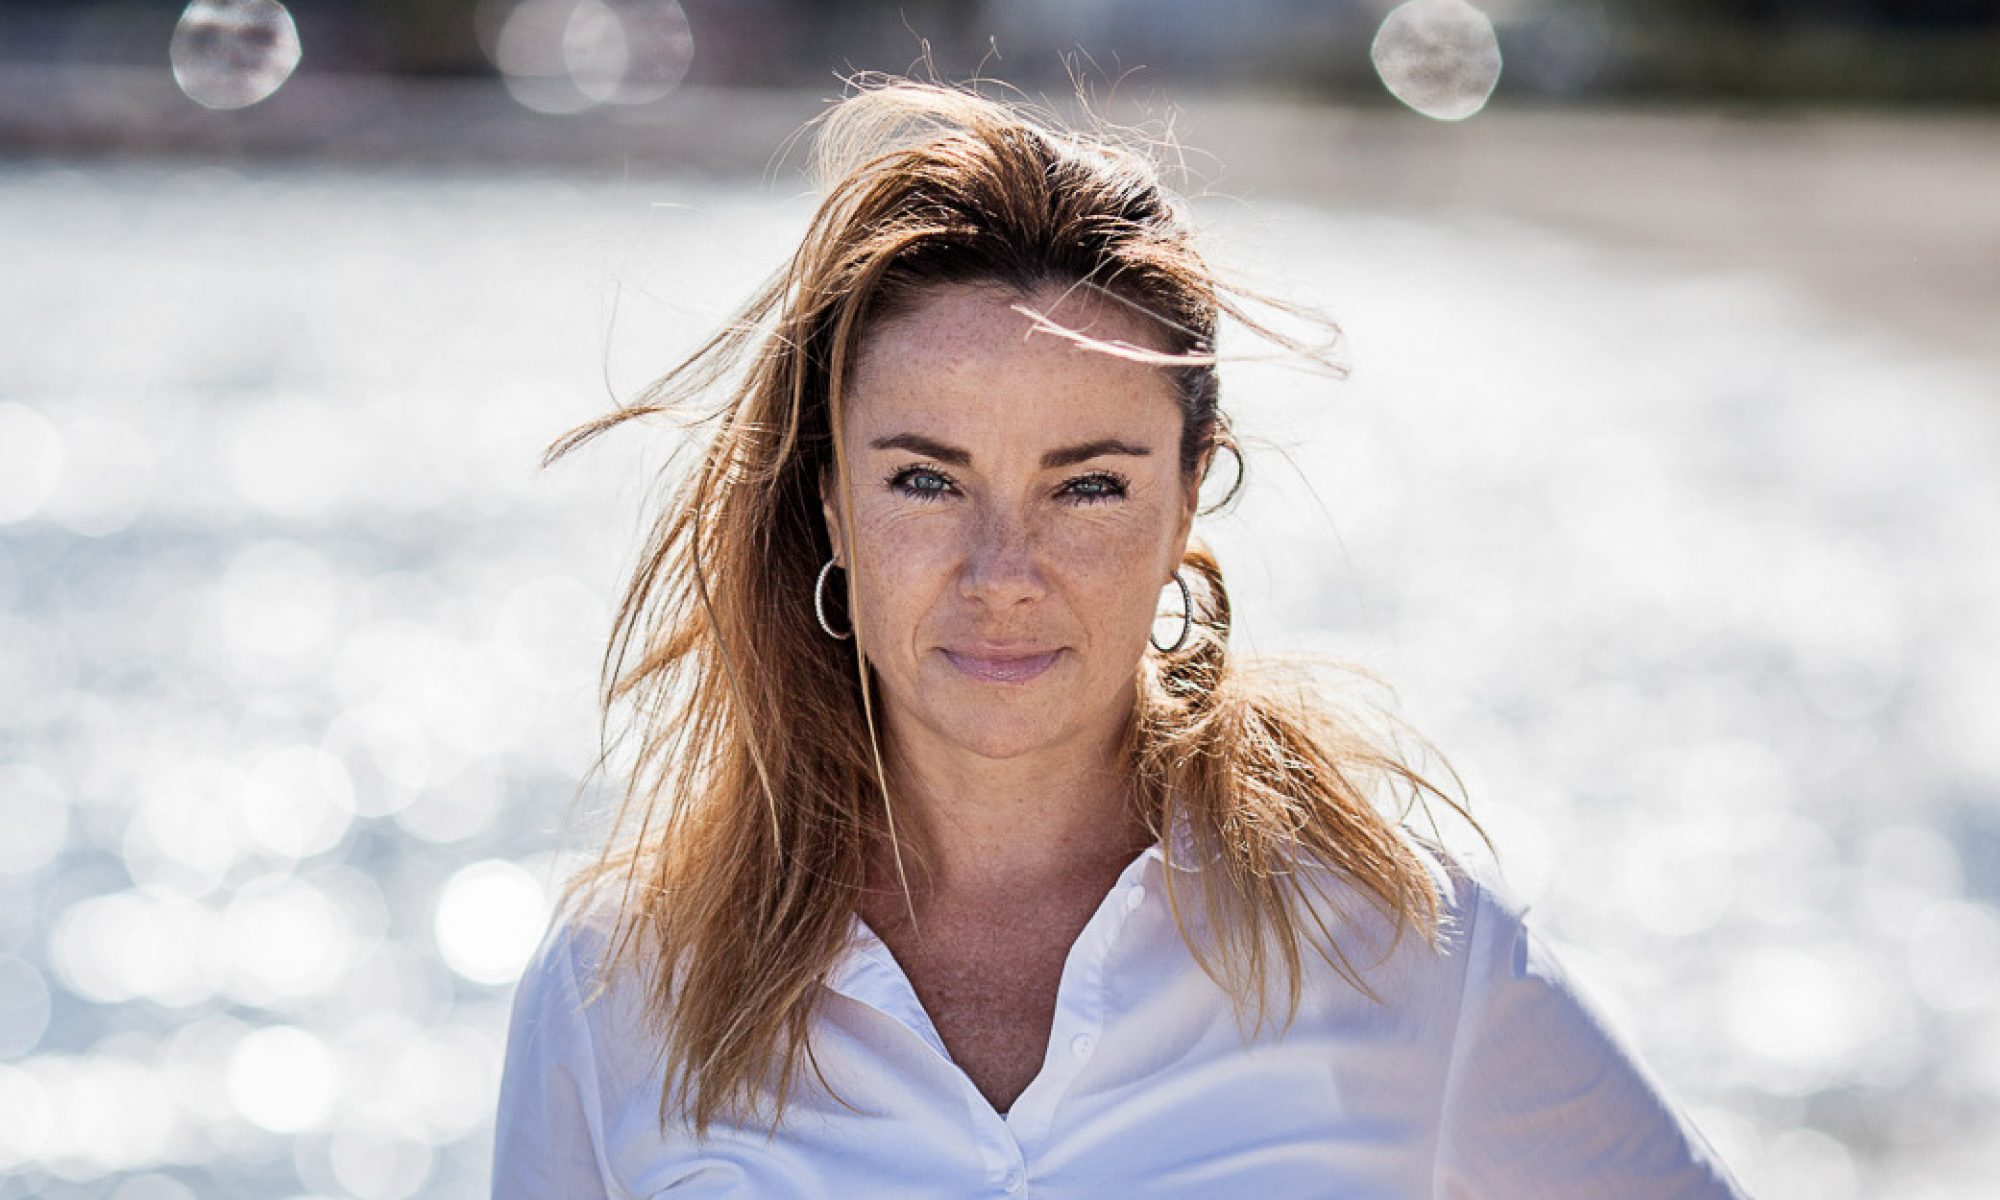 Helena Risager, Executive Coach & Teacher